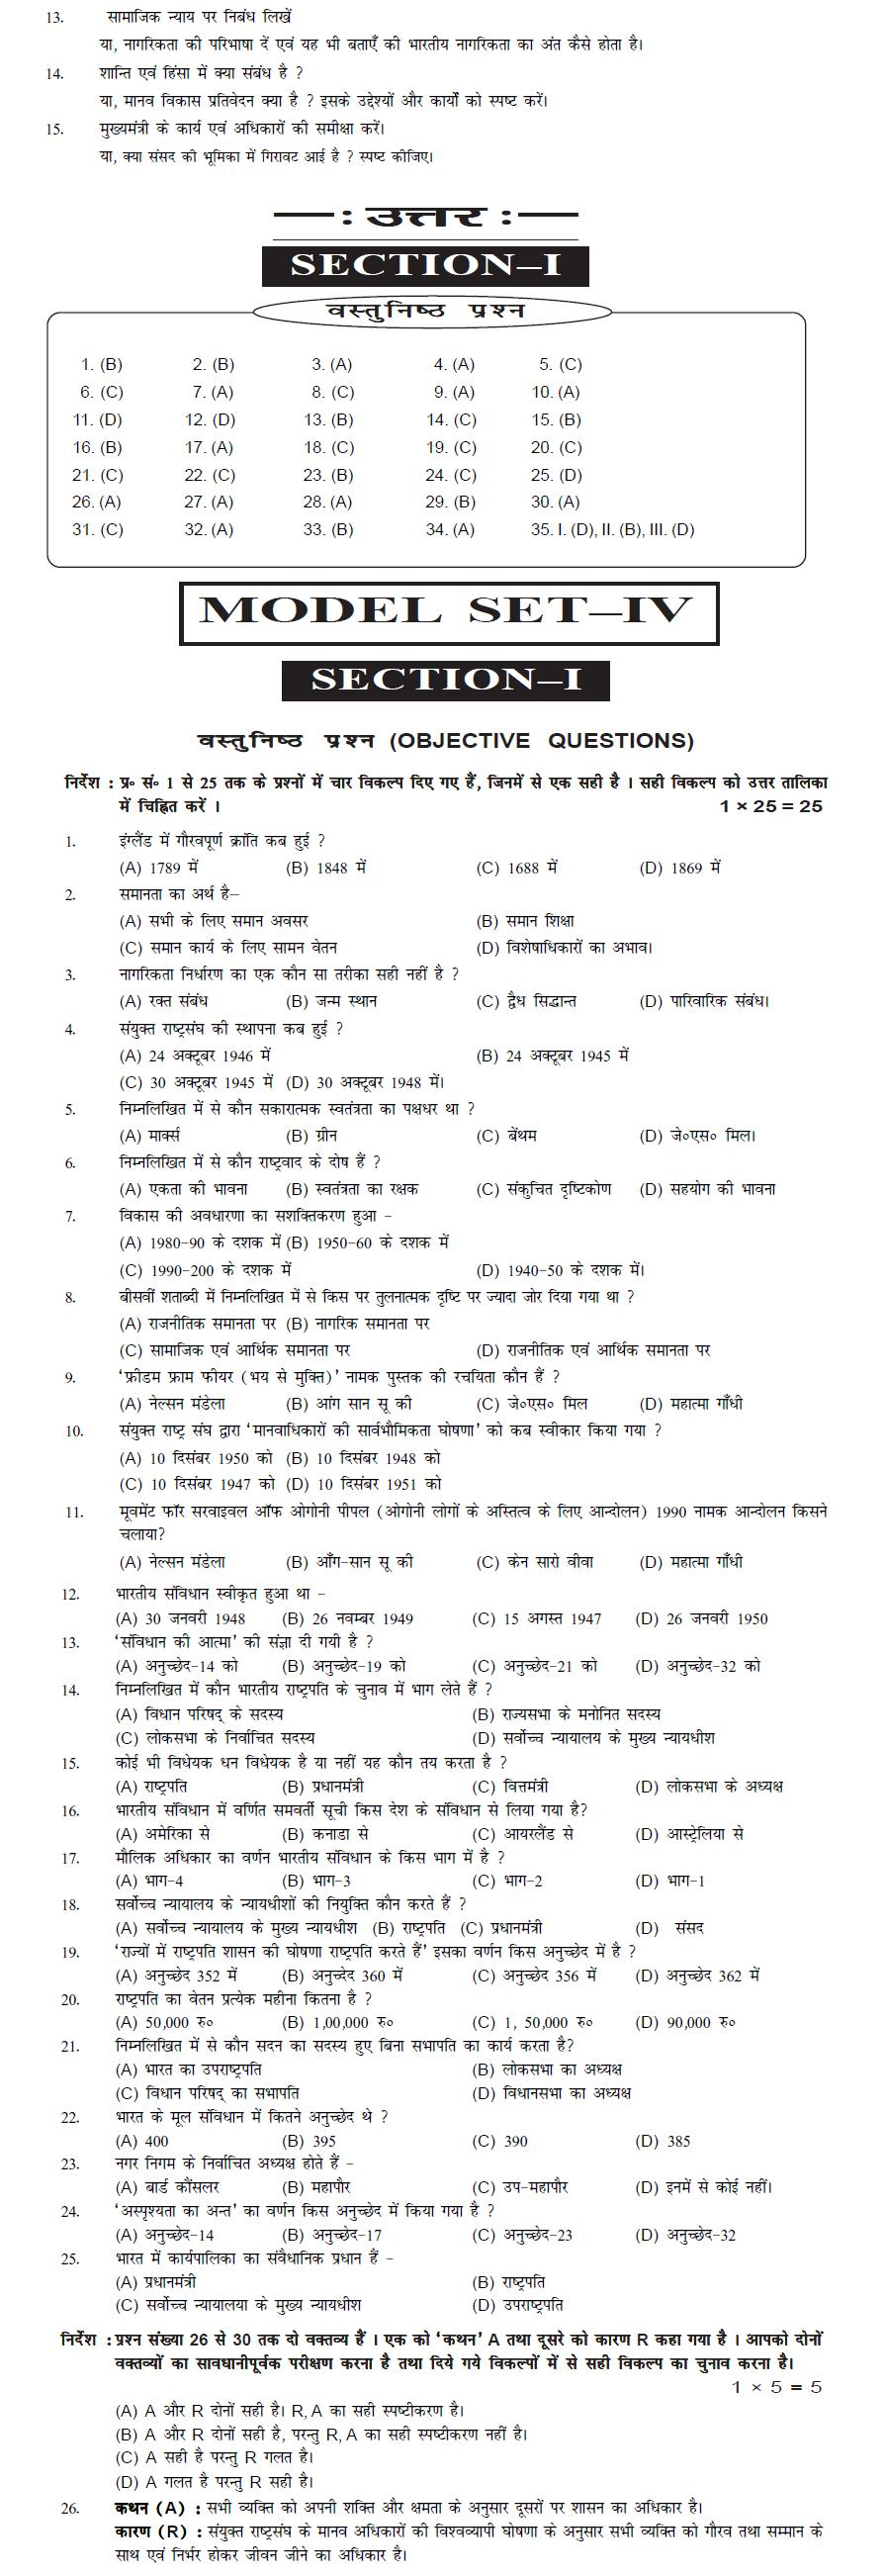 Bihar Board Class XI Arts Model Question Papers